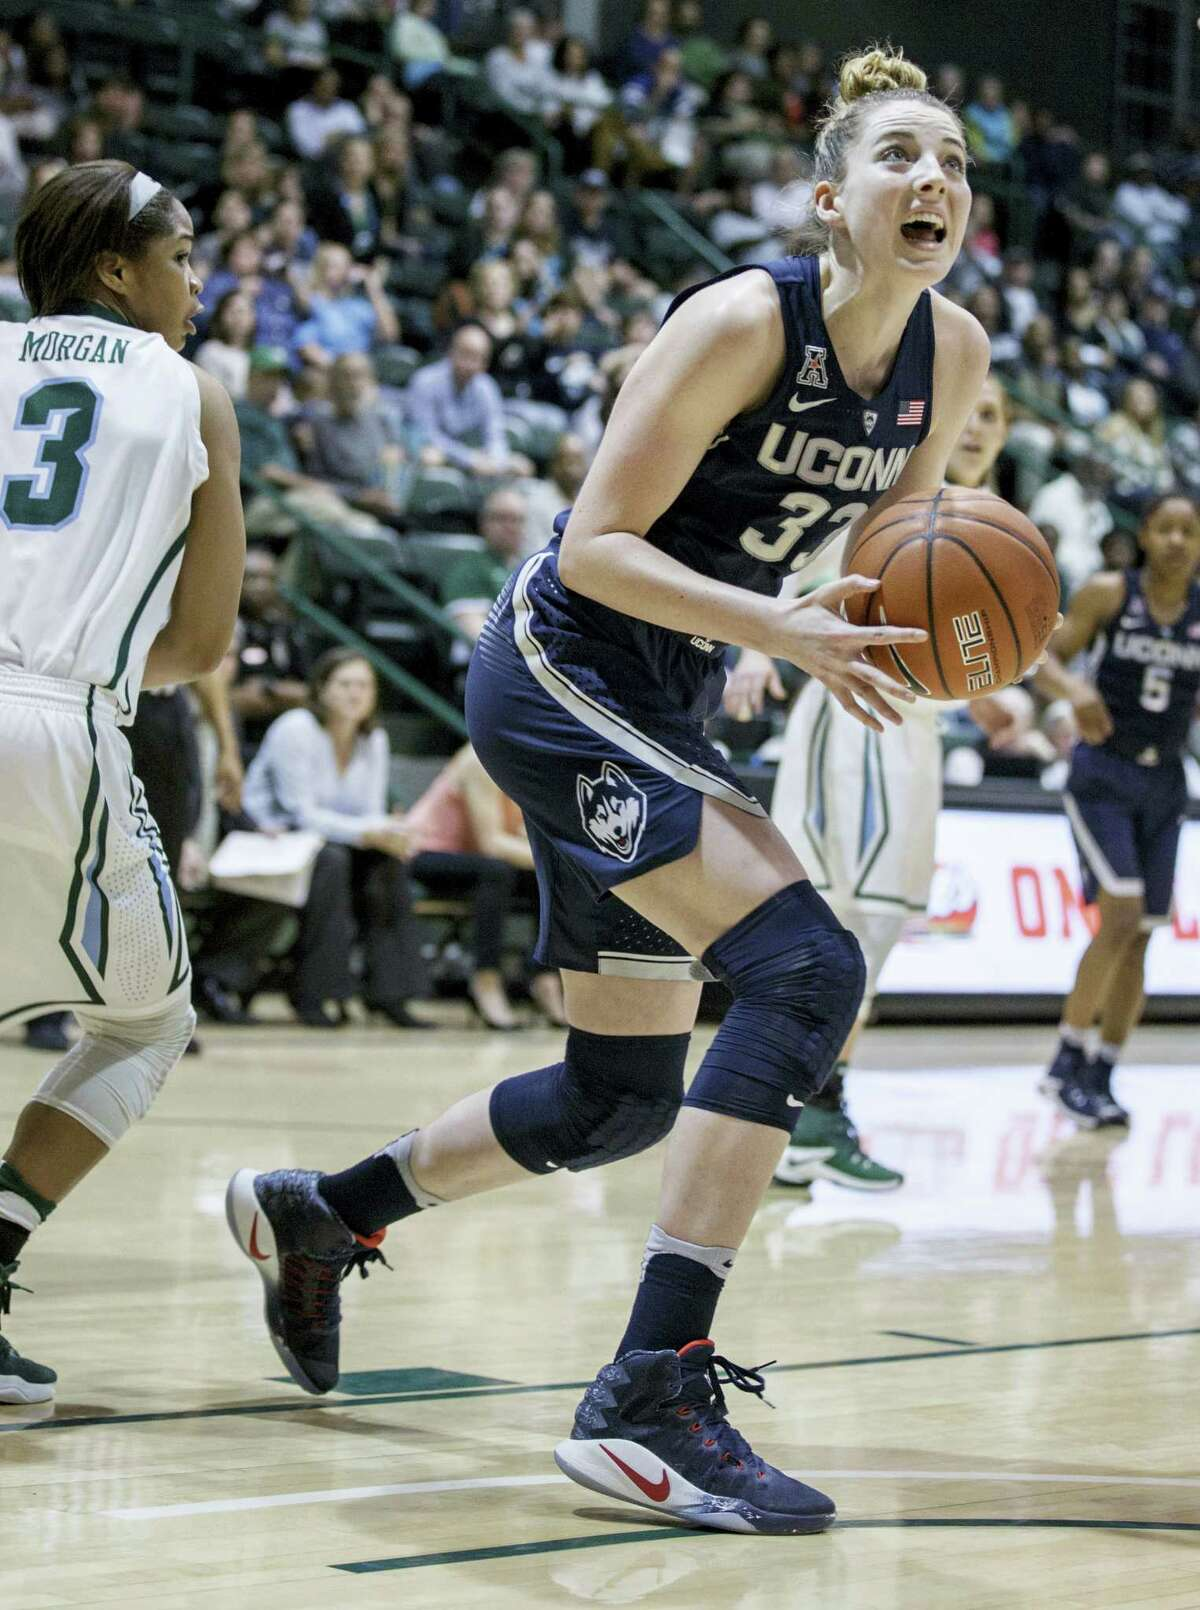 UConn guard/forward Katie Lou Samuelson (33) goes to the basket during the first half of the Huskies' win over Tulane Saturday.